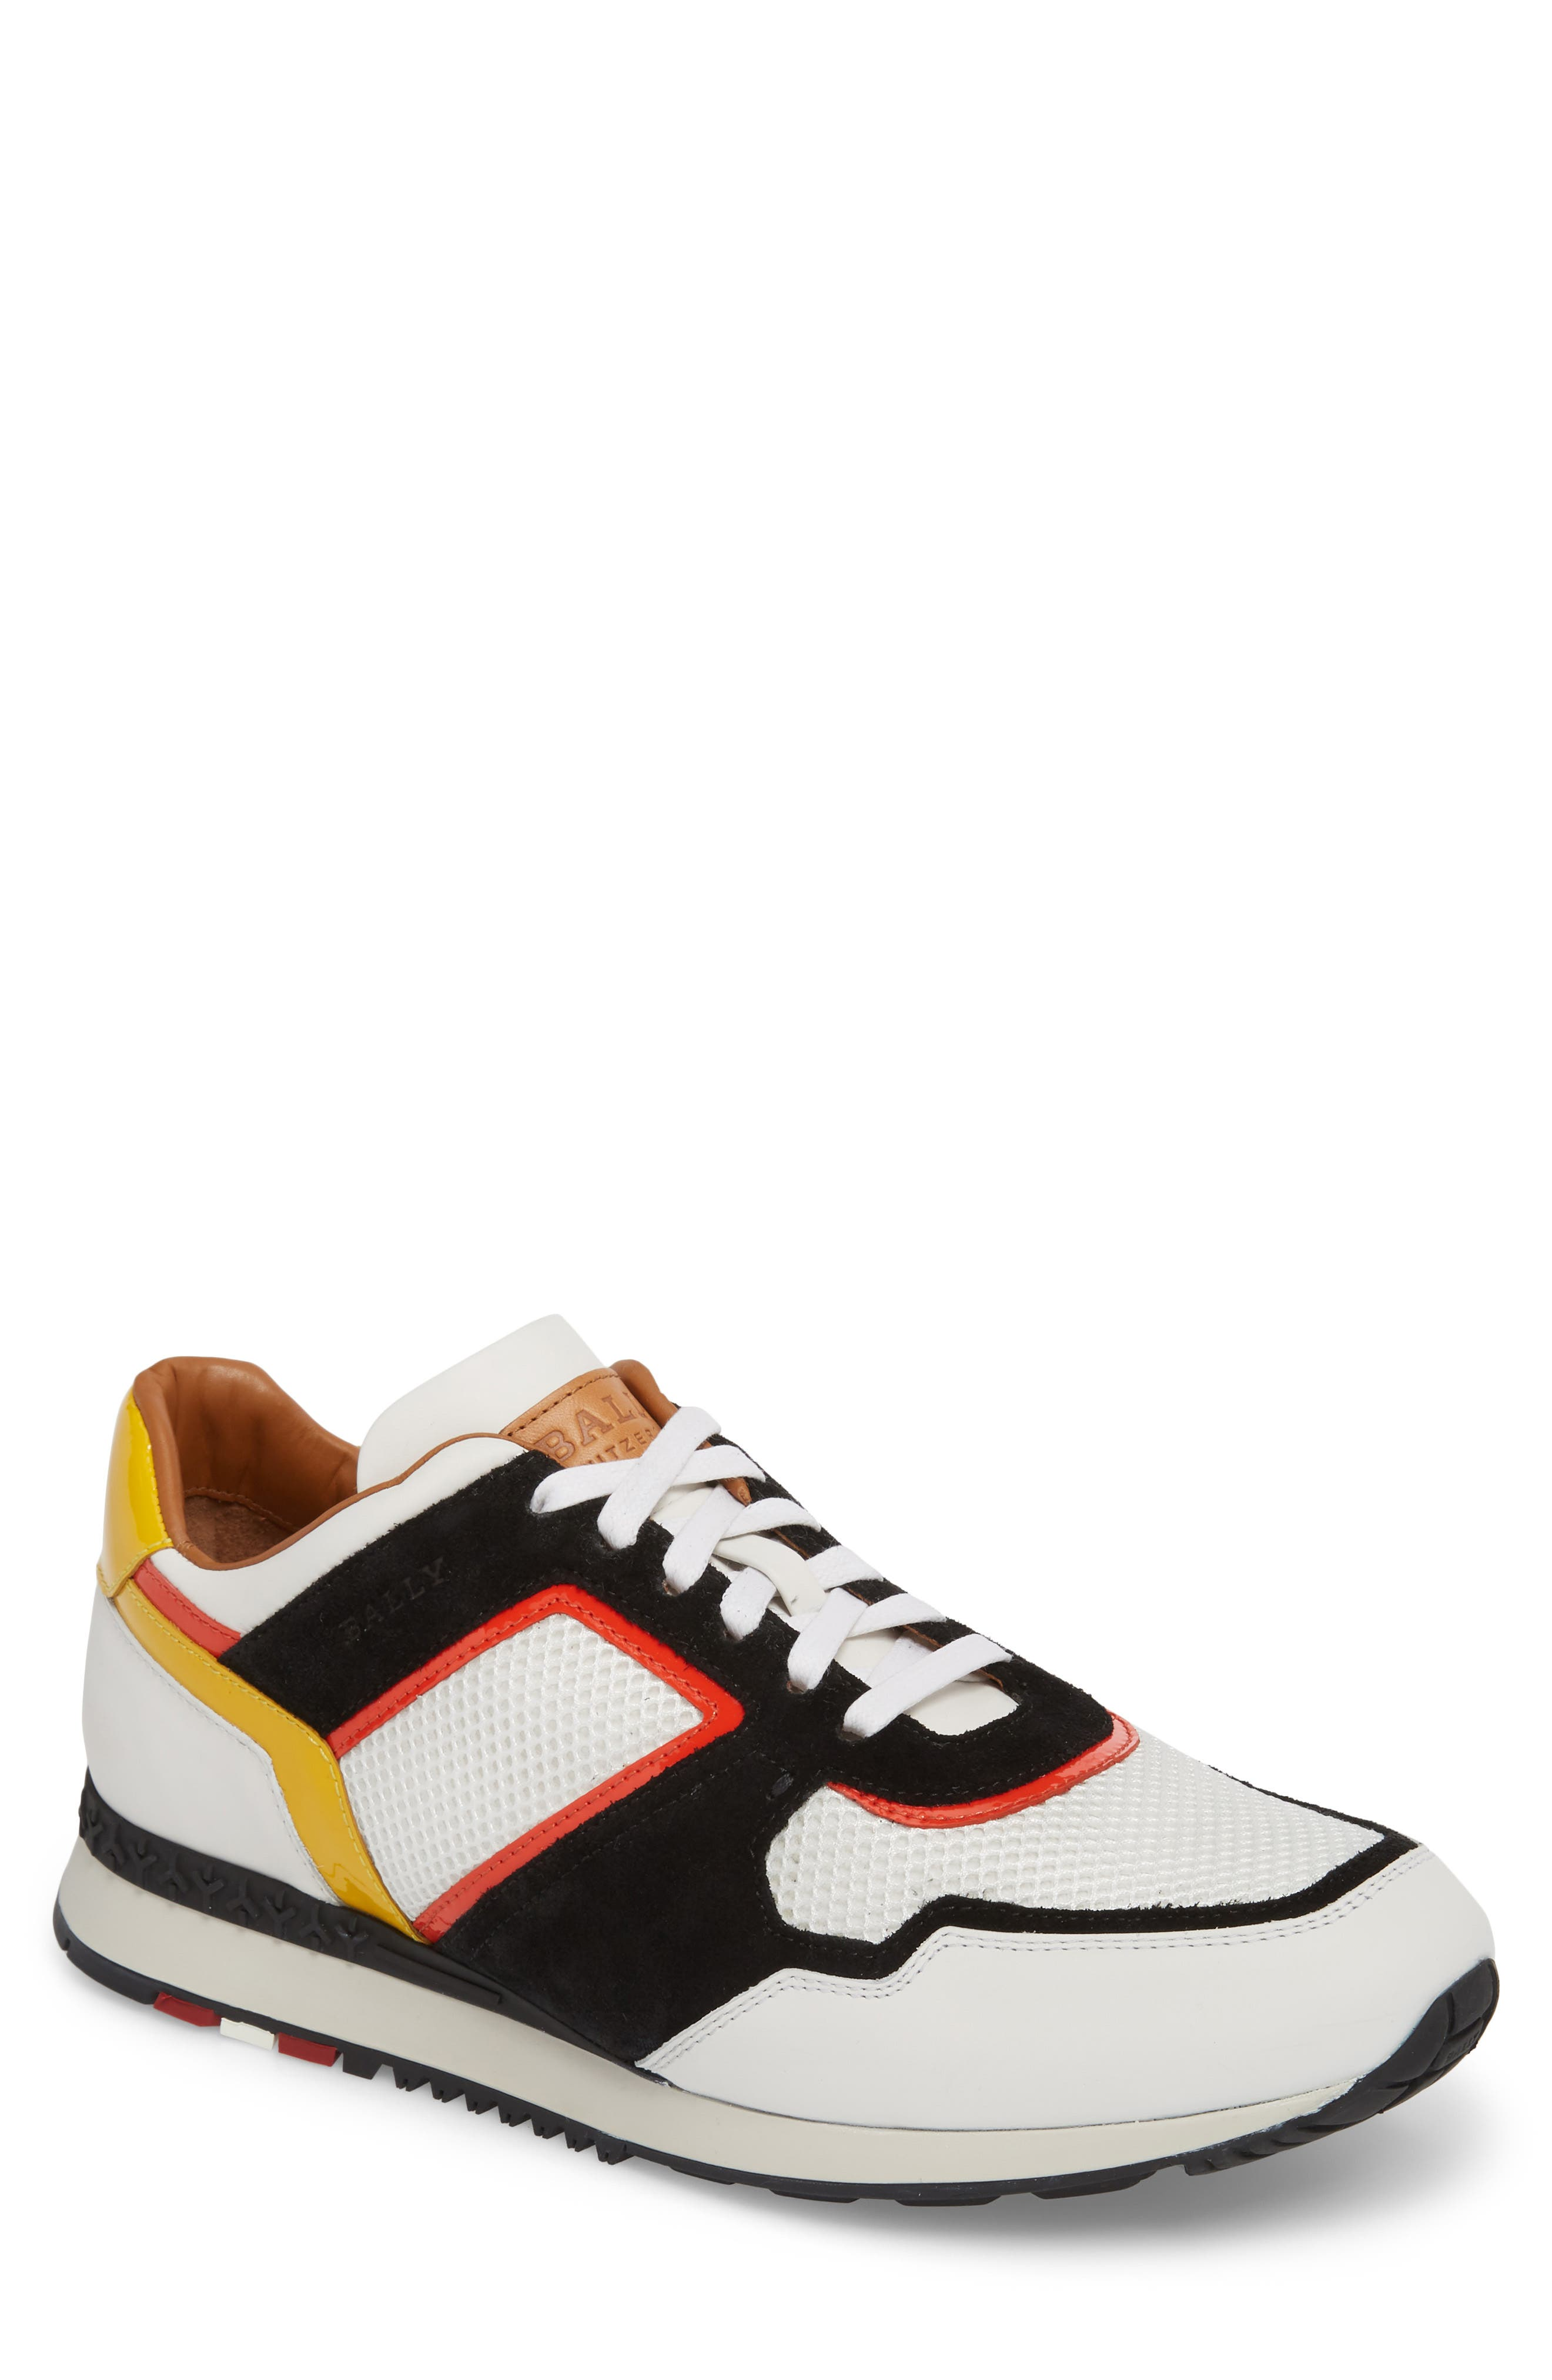 Astreo Low Top Sneaker,                             Main thumbnail 1, color,                             109